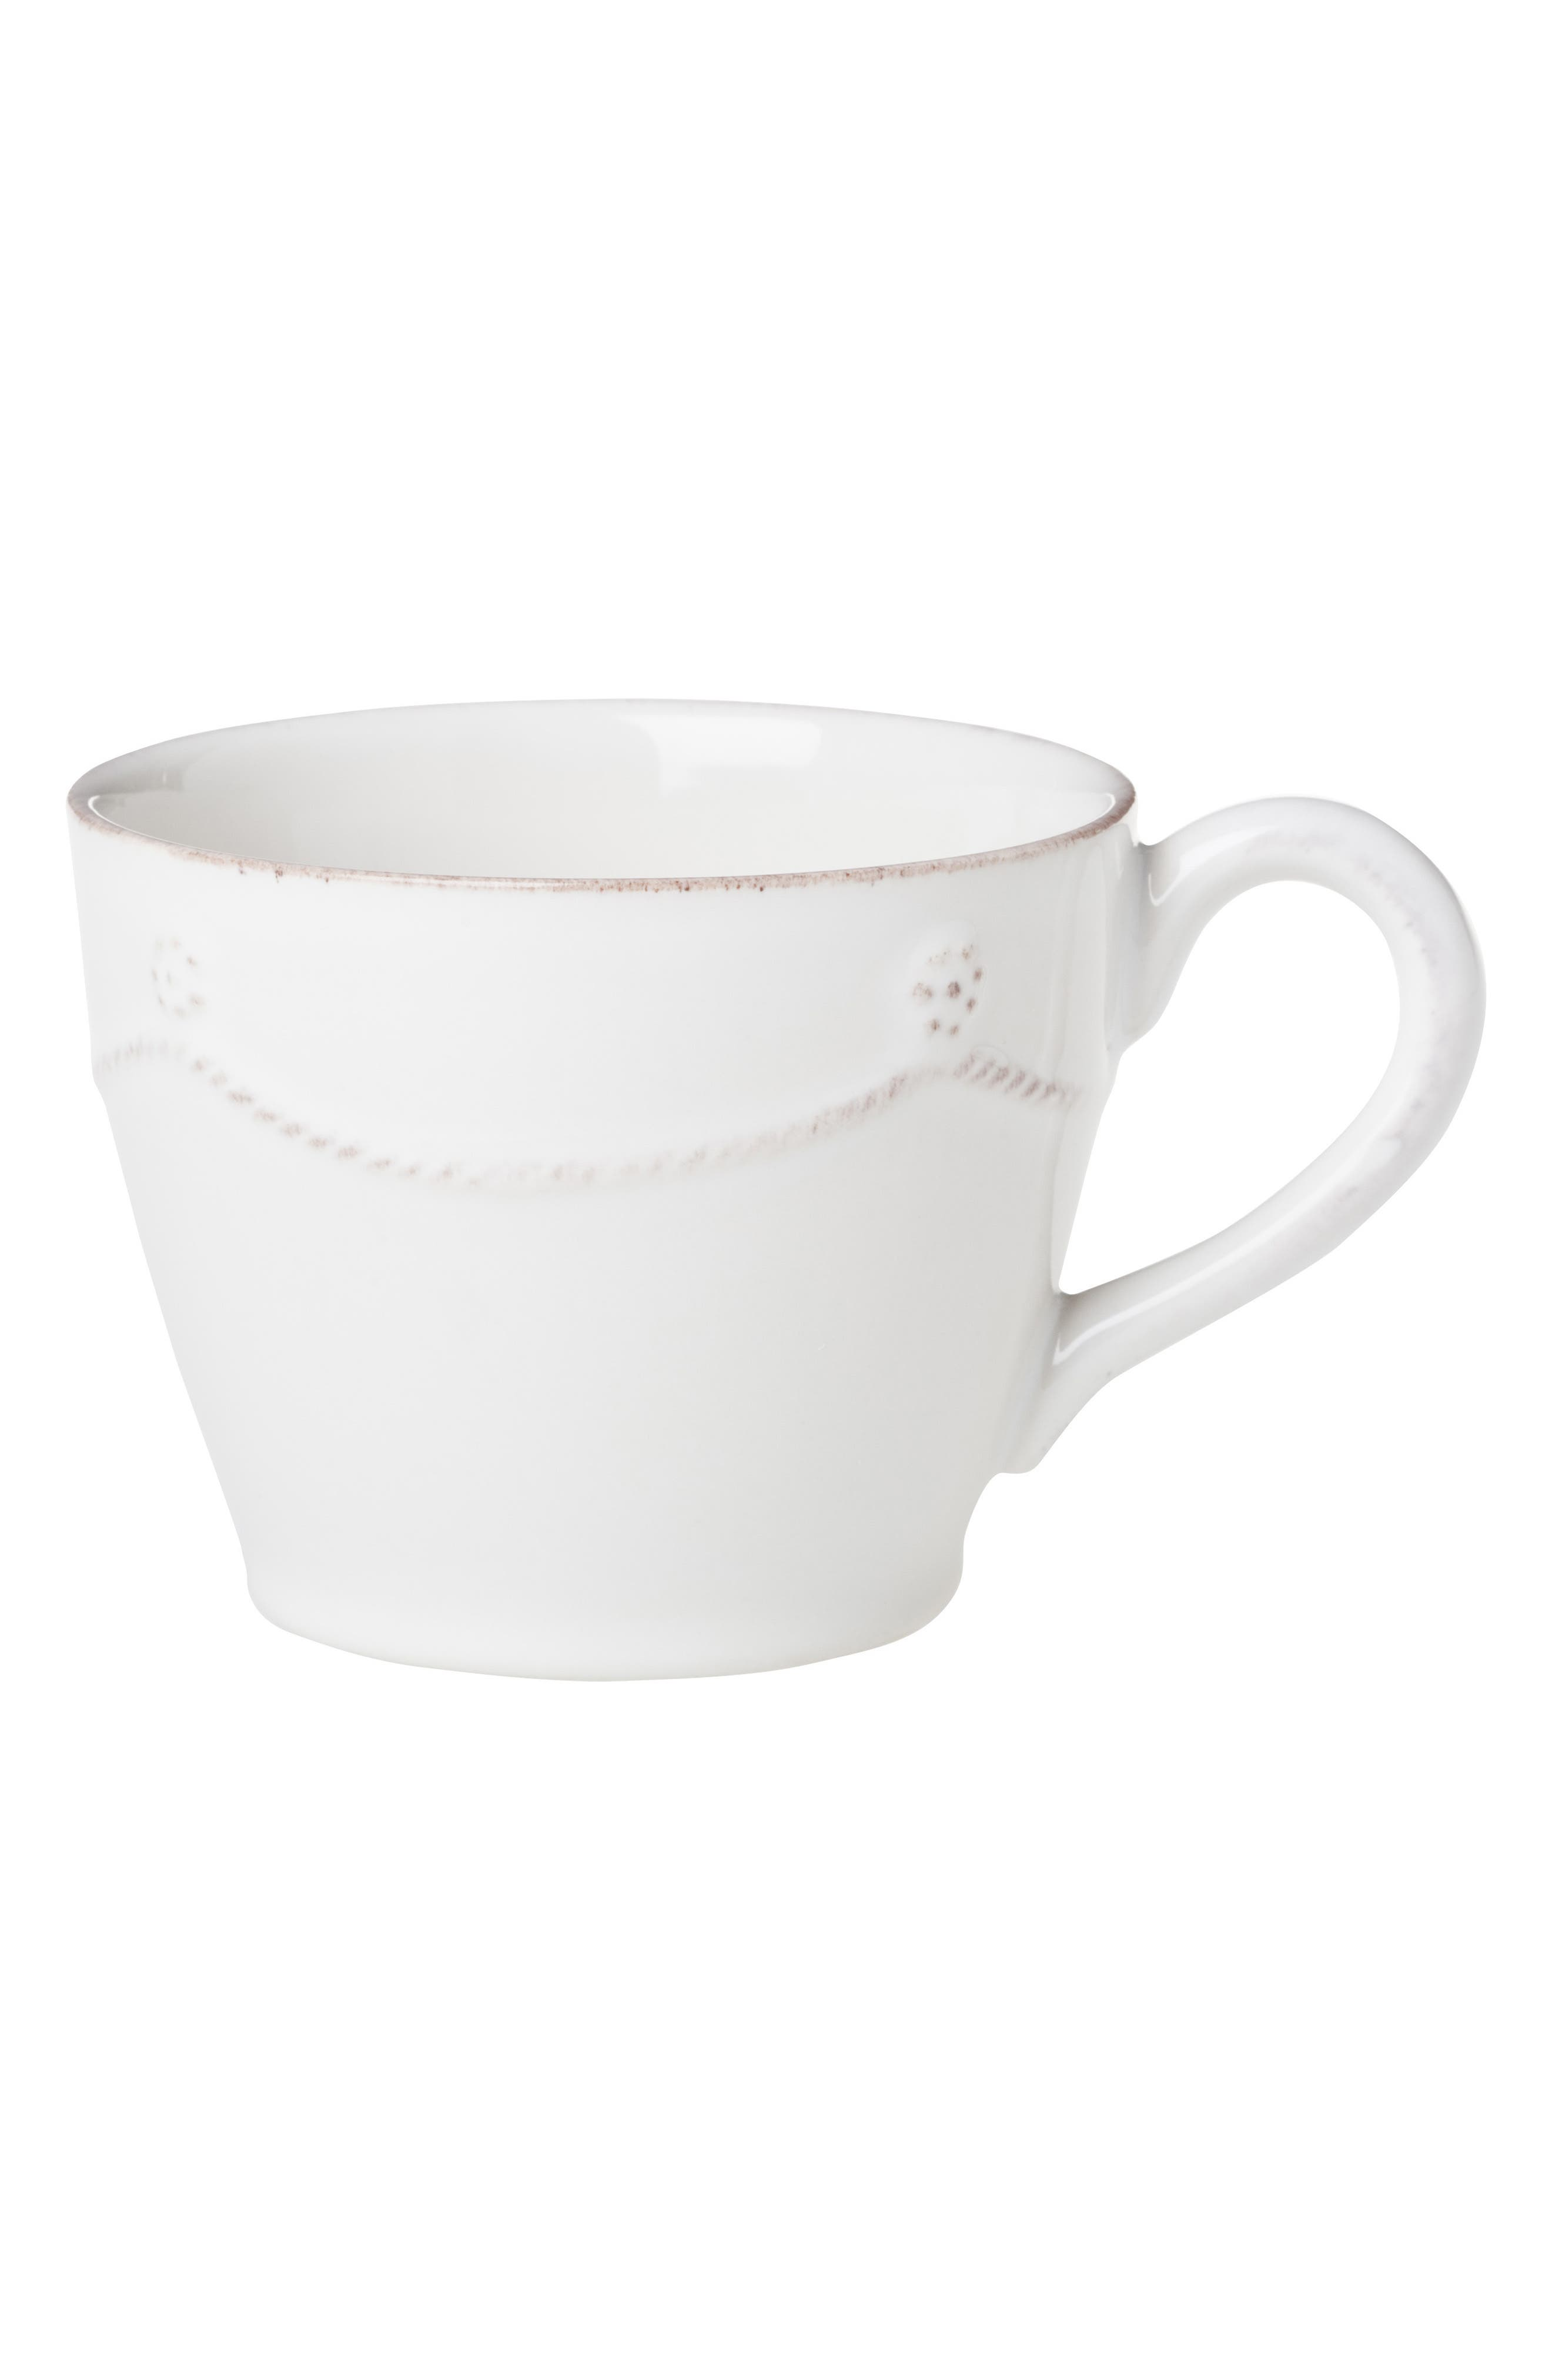 'Berry and Thread' Tea &Coffee Cup,                             Alternate thumbnail 2, color,                             100